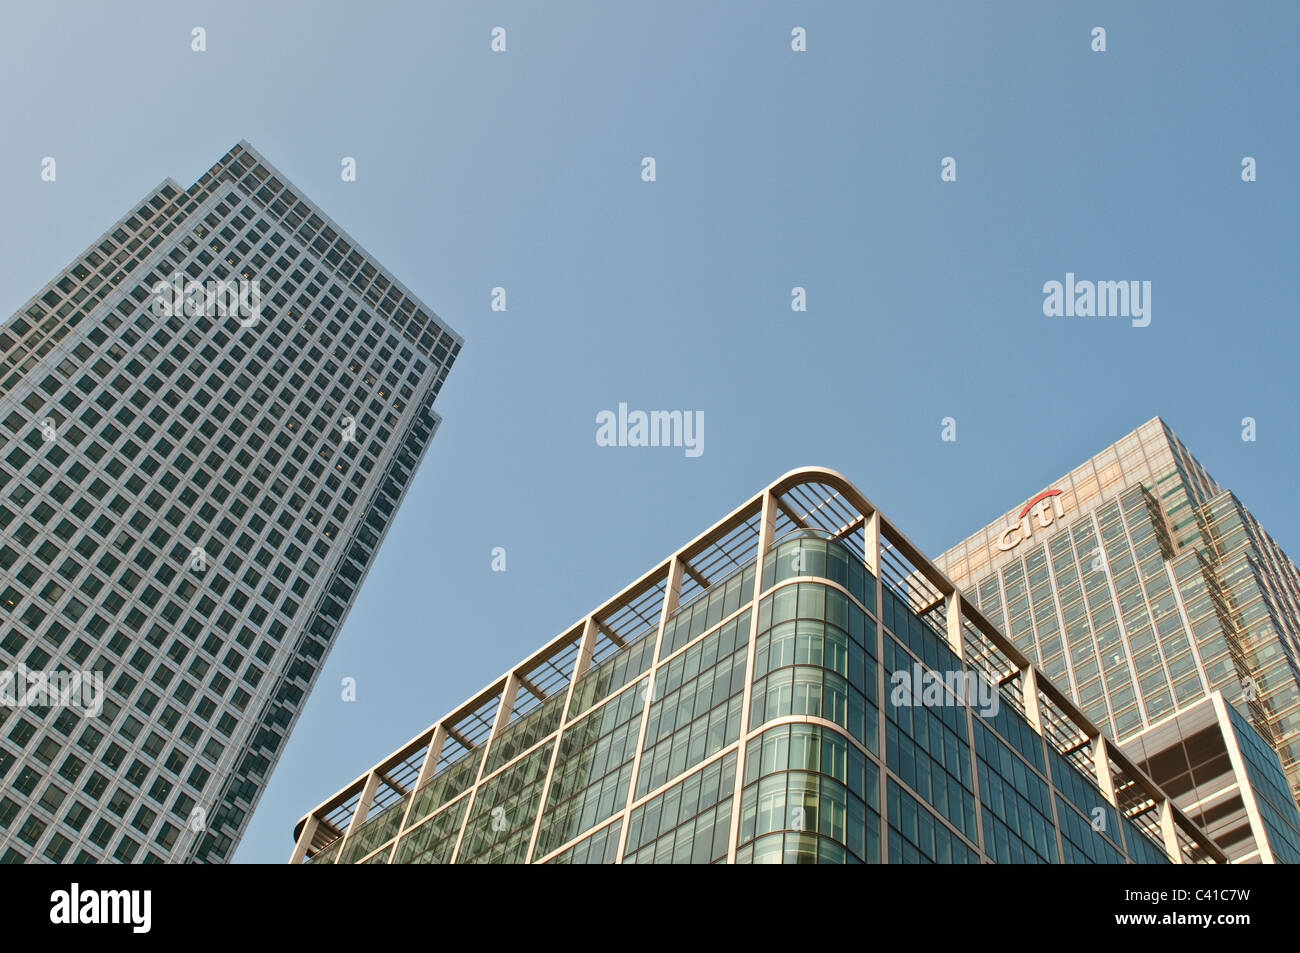 One Canada Square and City bank skyscrapers, Canary Wharf, London, UK - Stock Image